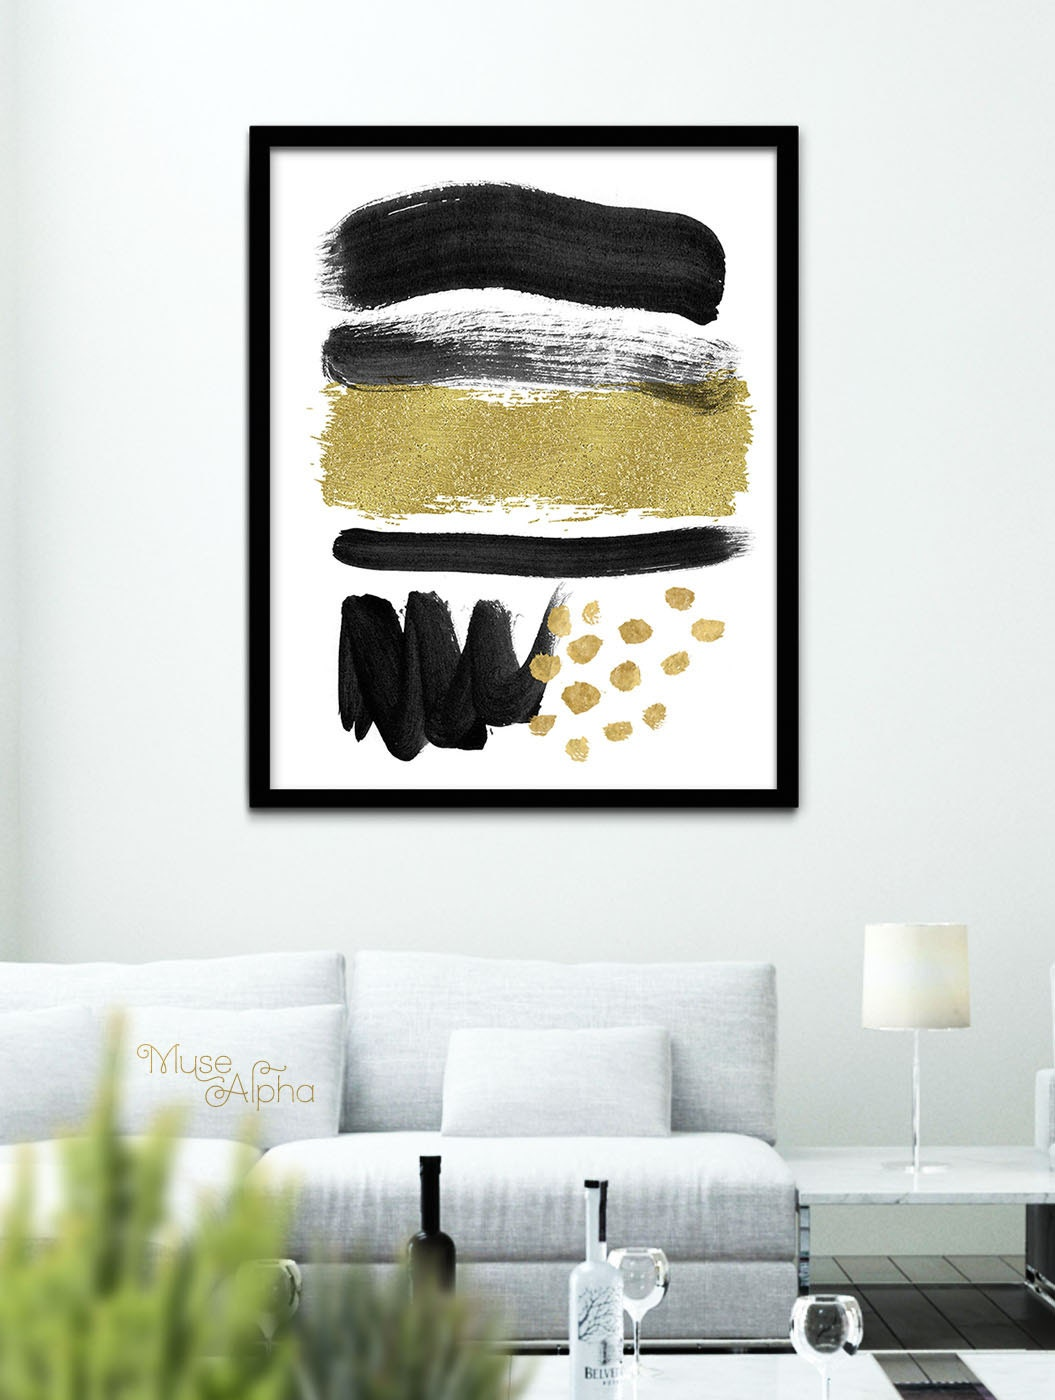 Wall Art Black Gold : Gold wall art black and poster prints